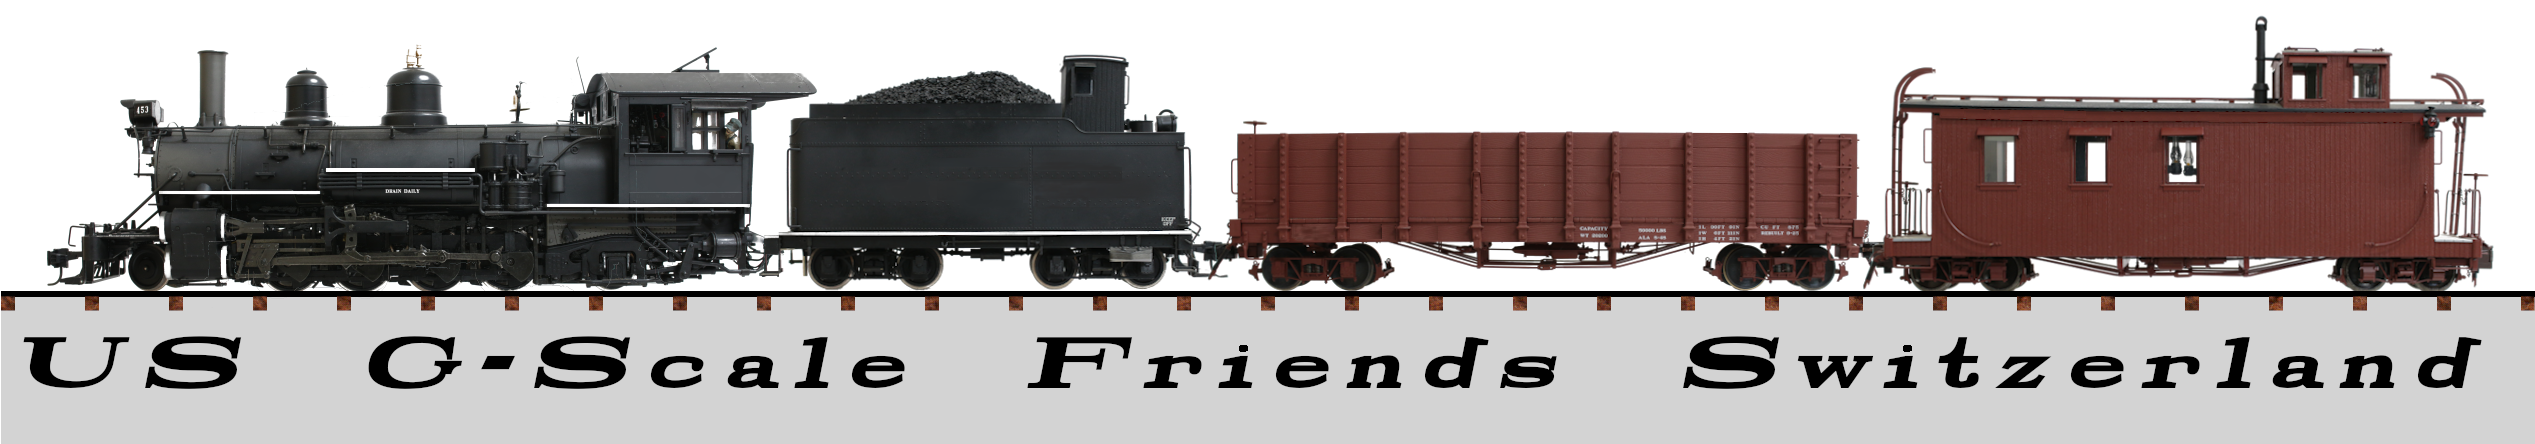 US G-Scale Friends Switzerland